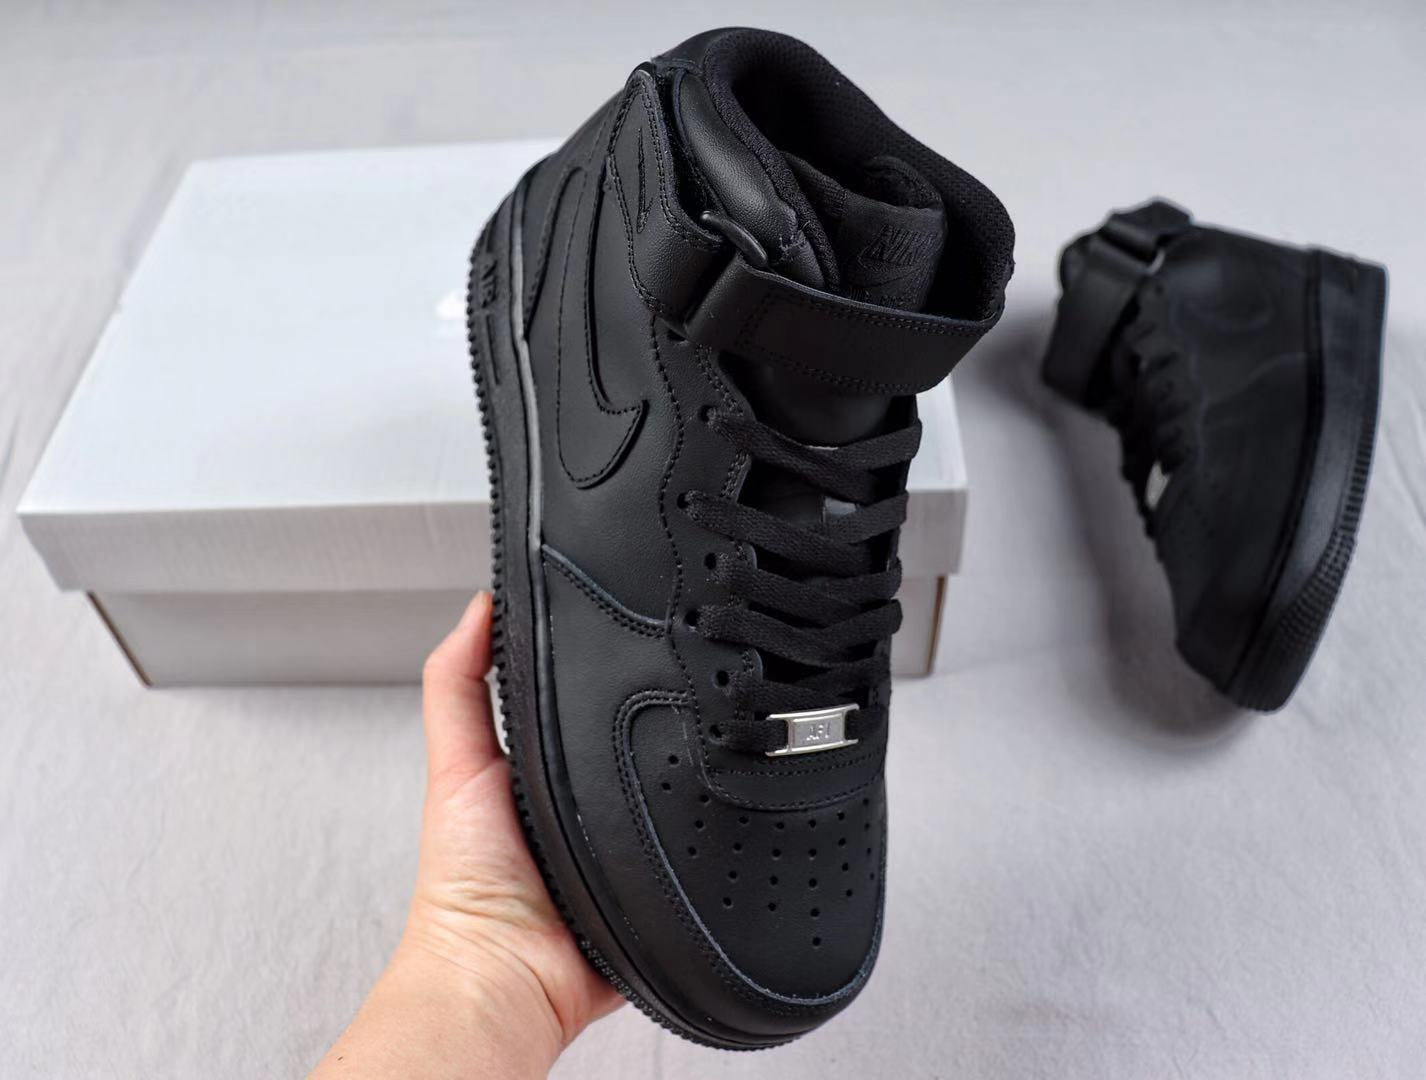 Nike Air Force 1 Mid Black/Black Leather Shoes To Buy 315123-001